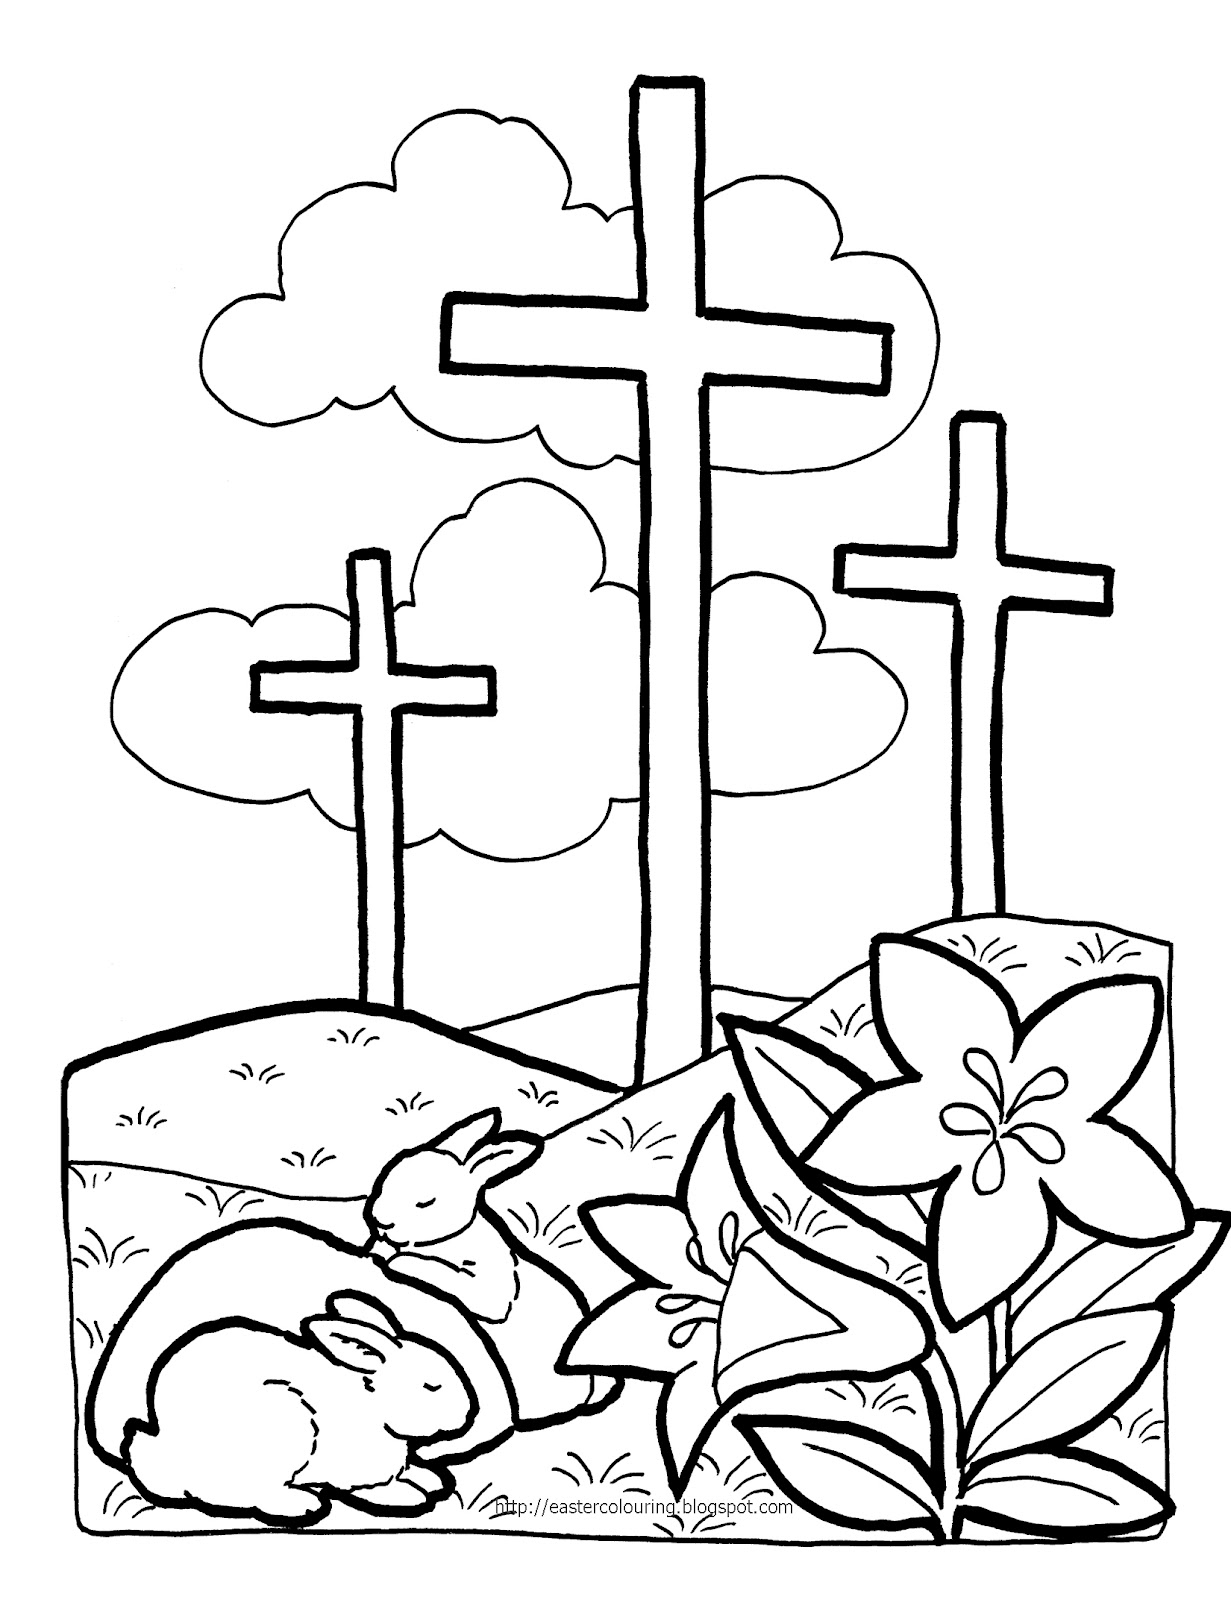 Kids Color Me Bible – Printable Bible Coloring Book with